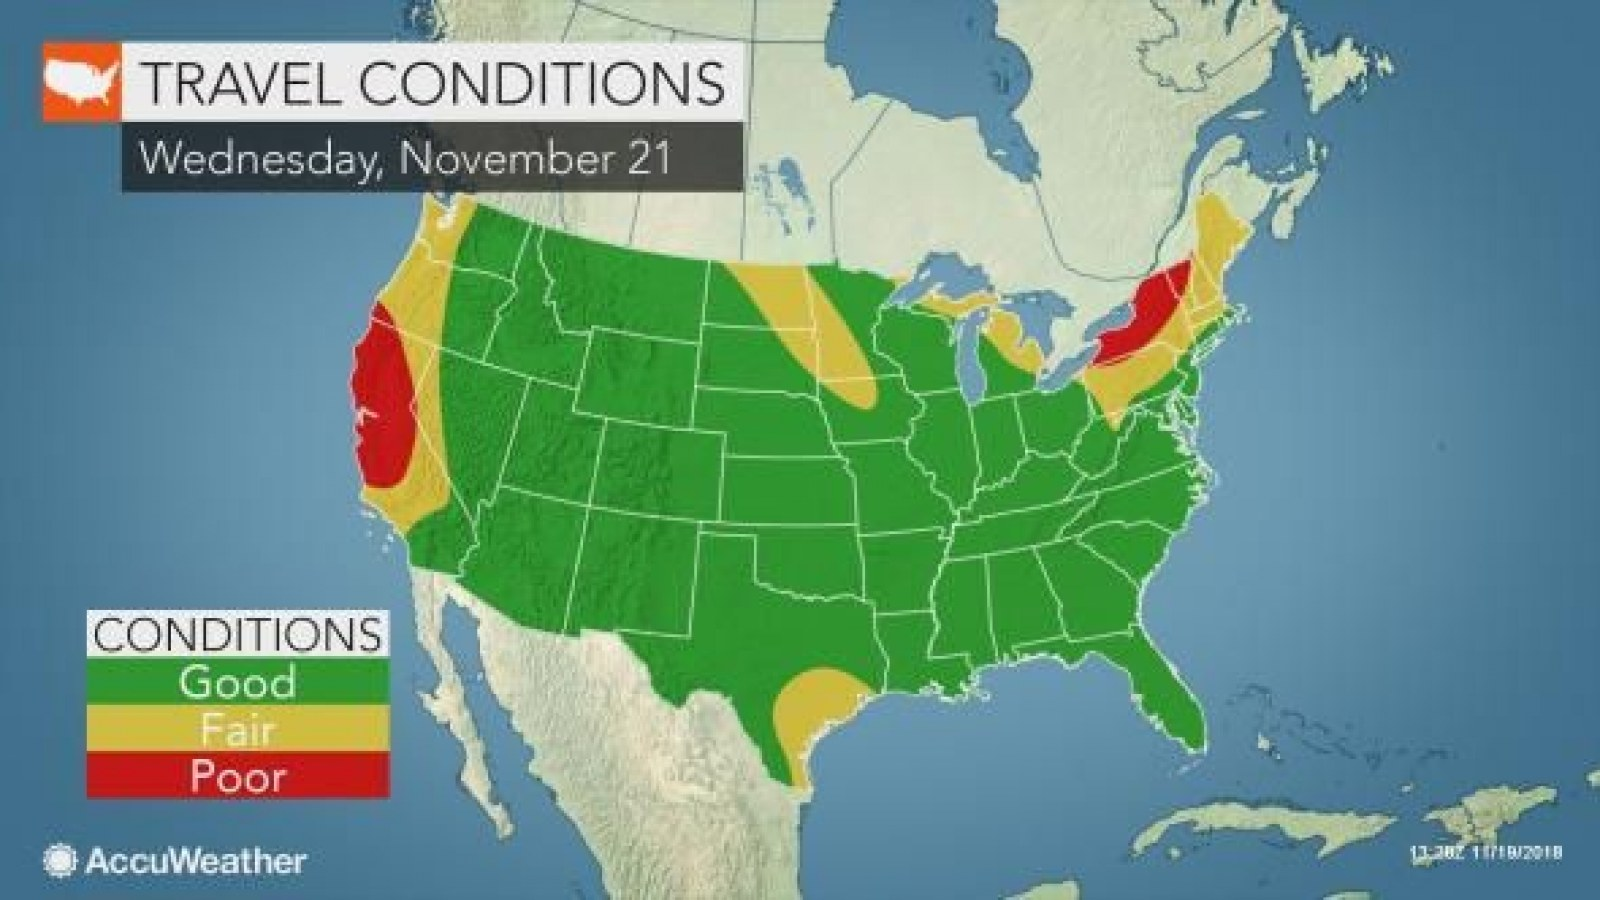 Weather pockets may slow some Thanksgiving travelers in Northeast